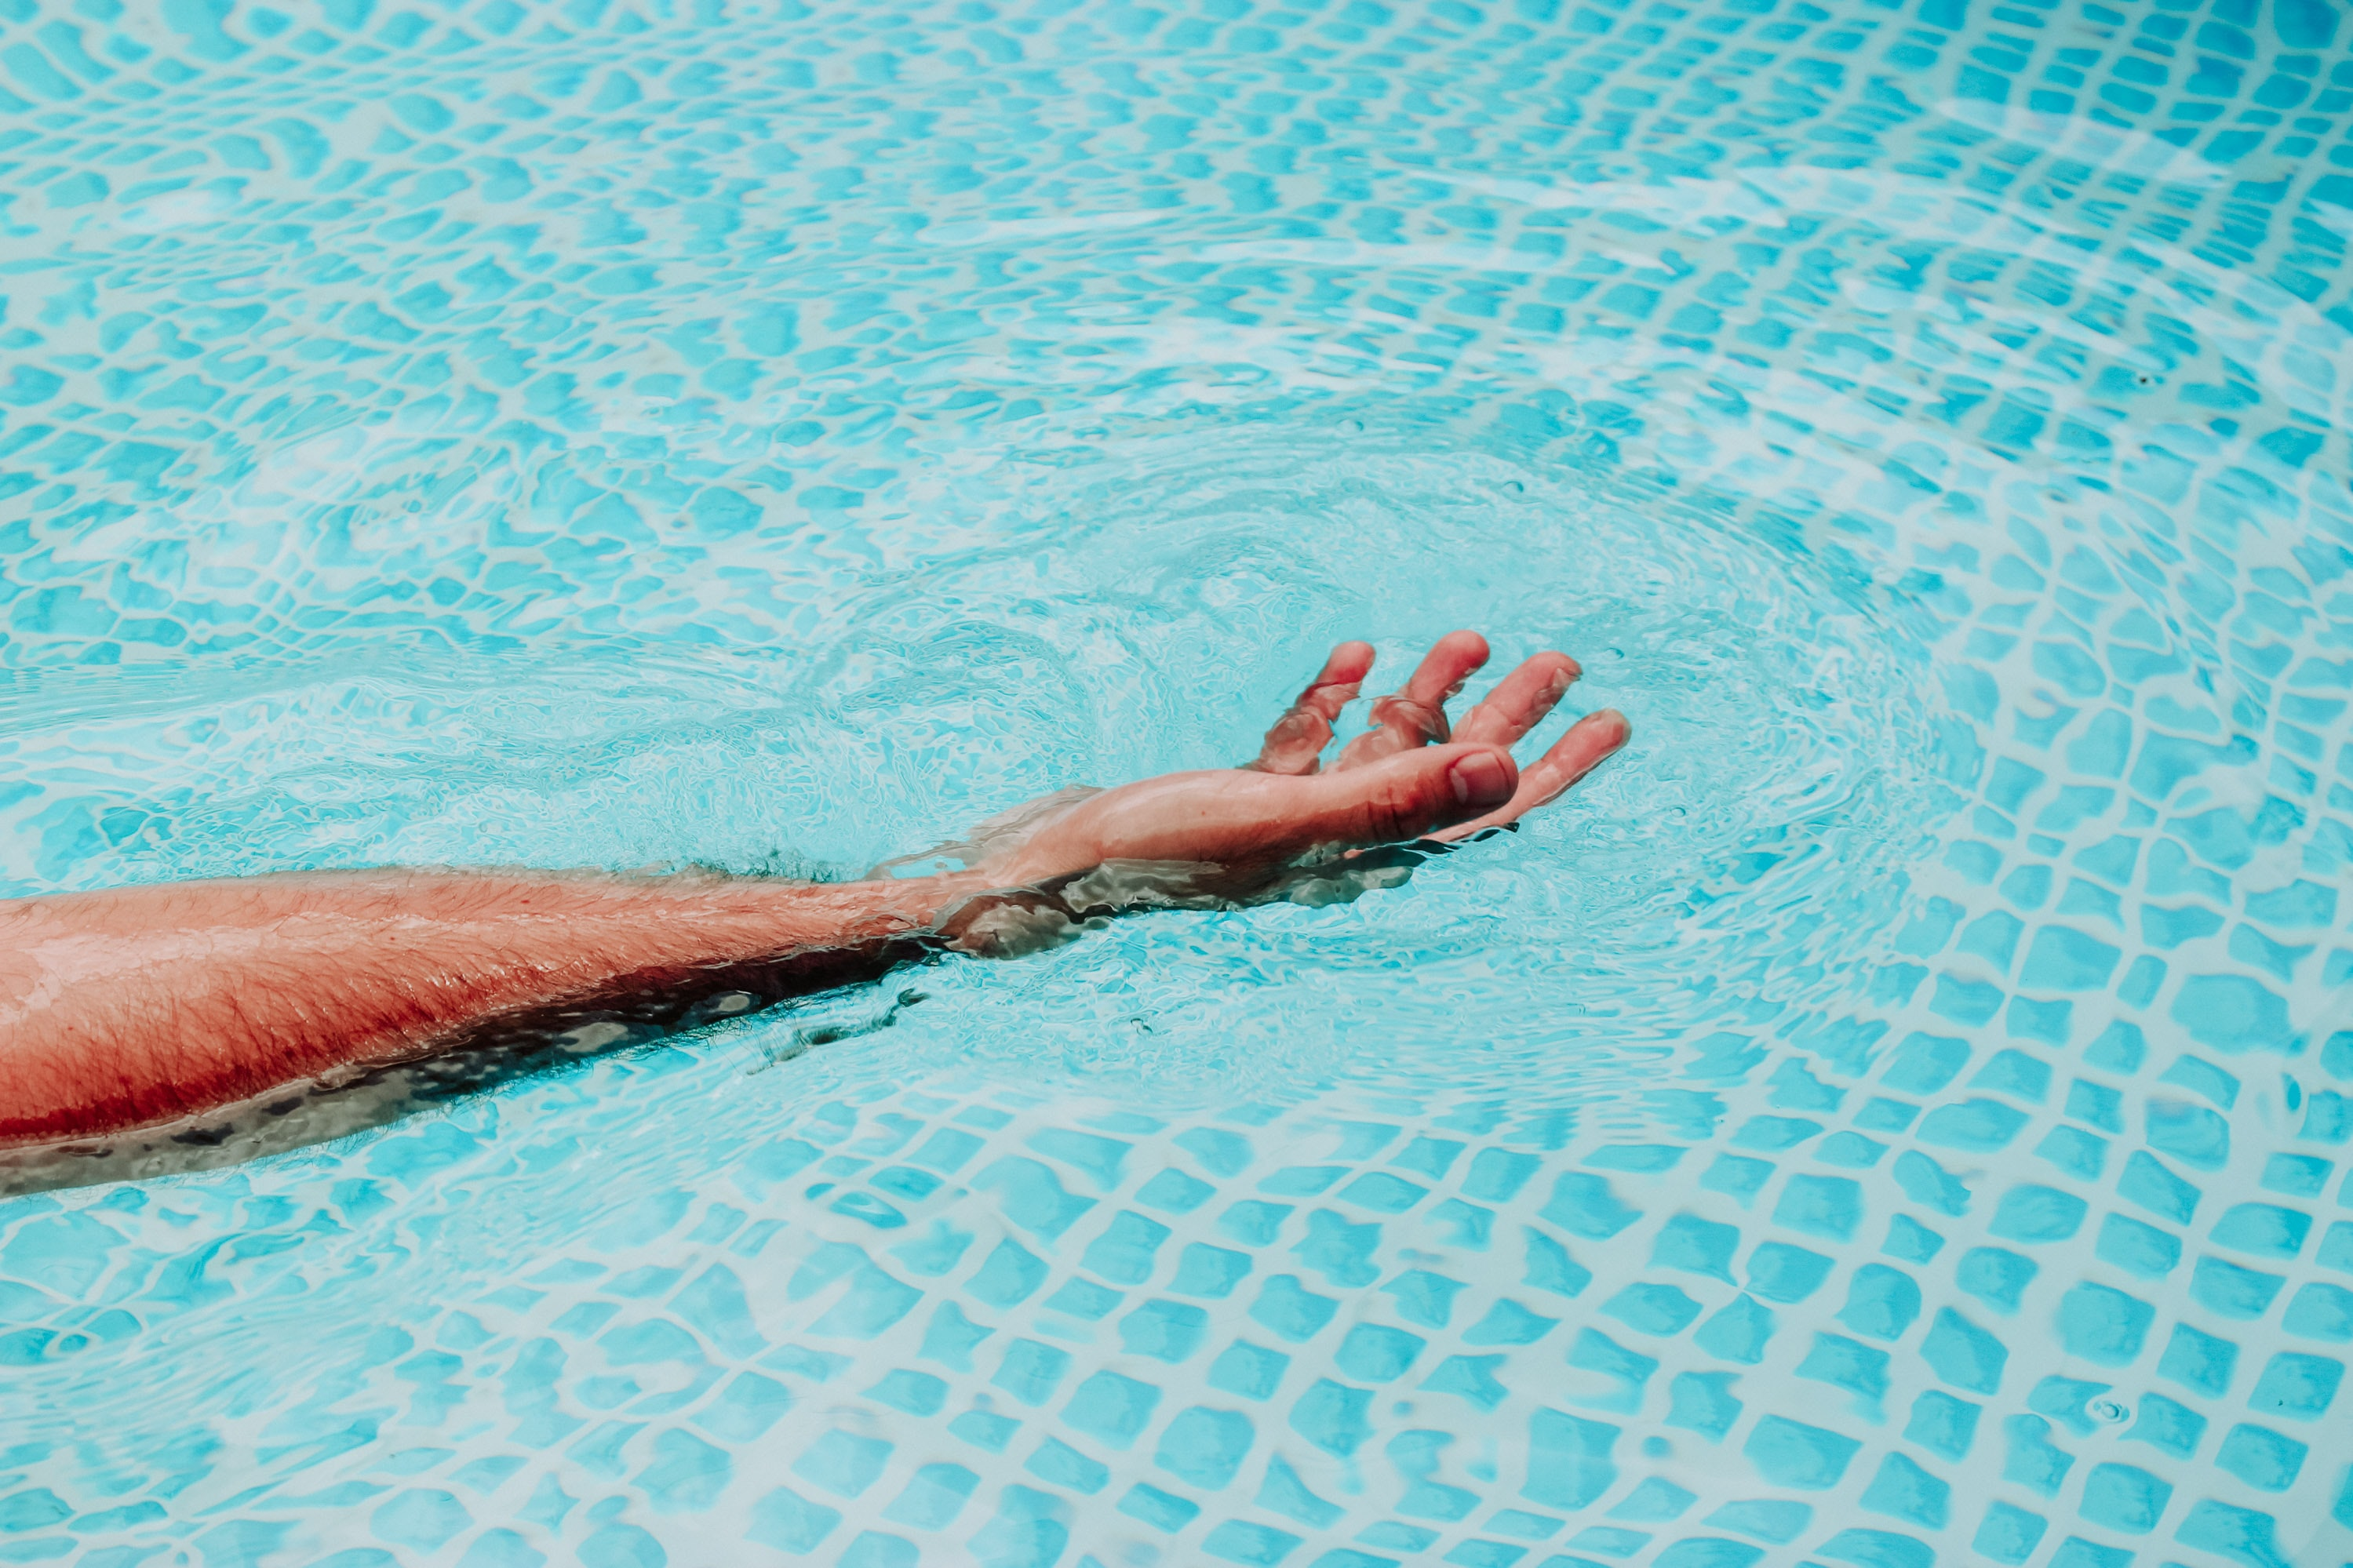 person's hand on above body of water during daytime